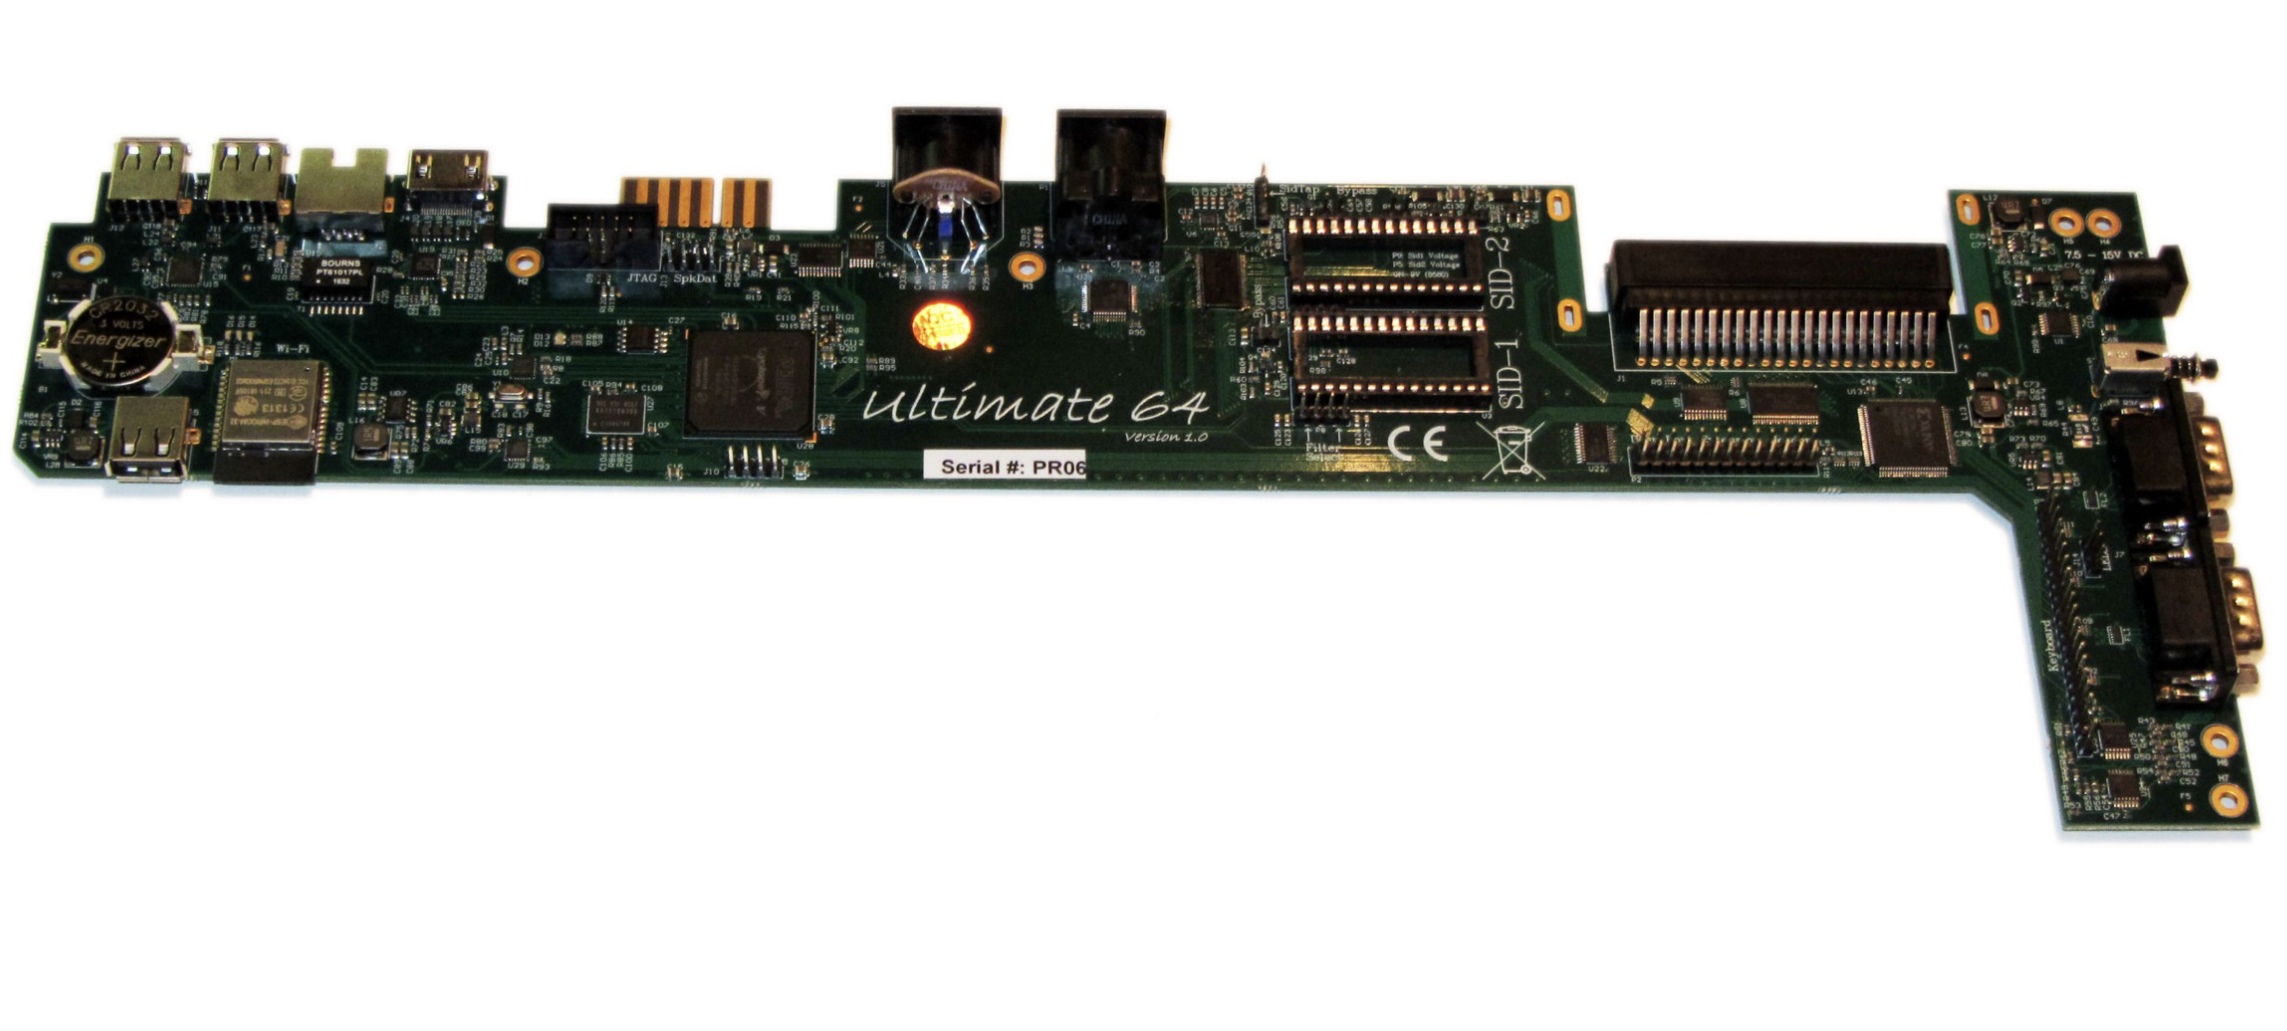 The Ultimate-64 Is a Commodore 64 Clone in an FPGA Format